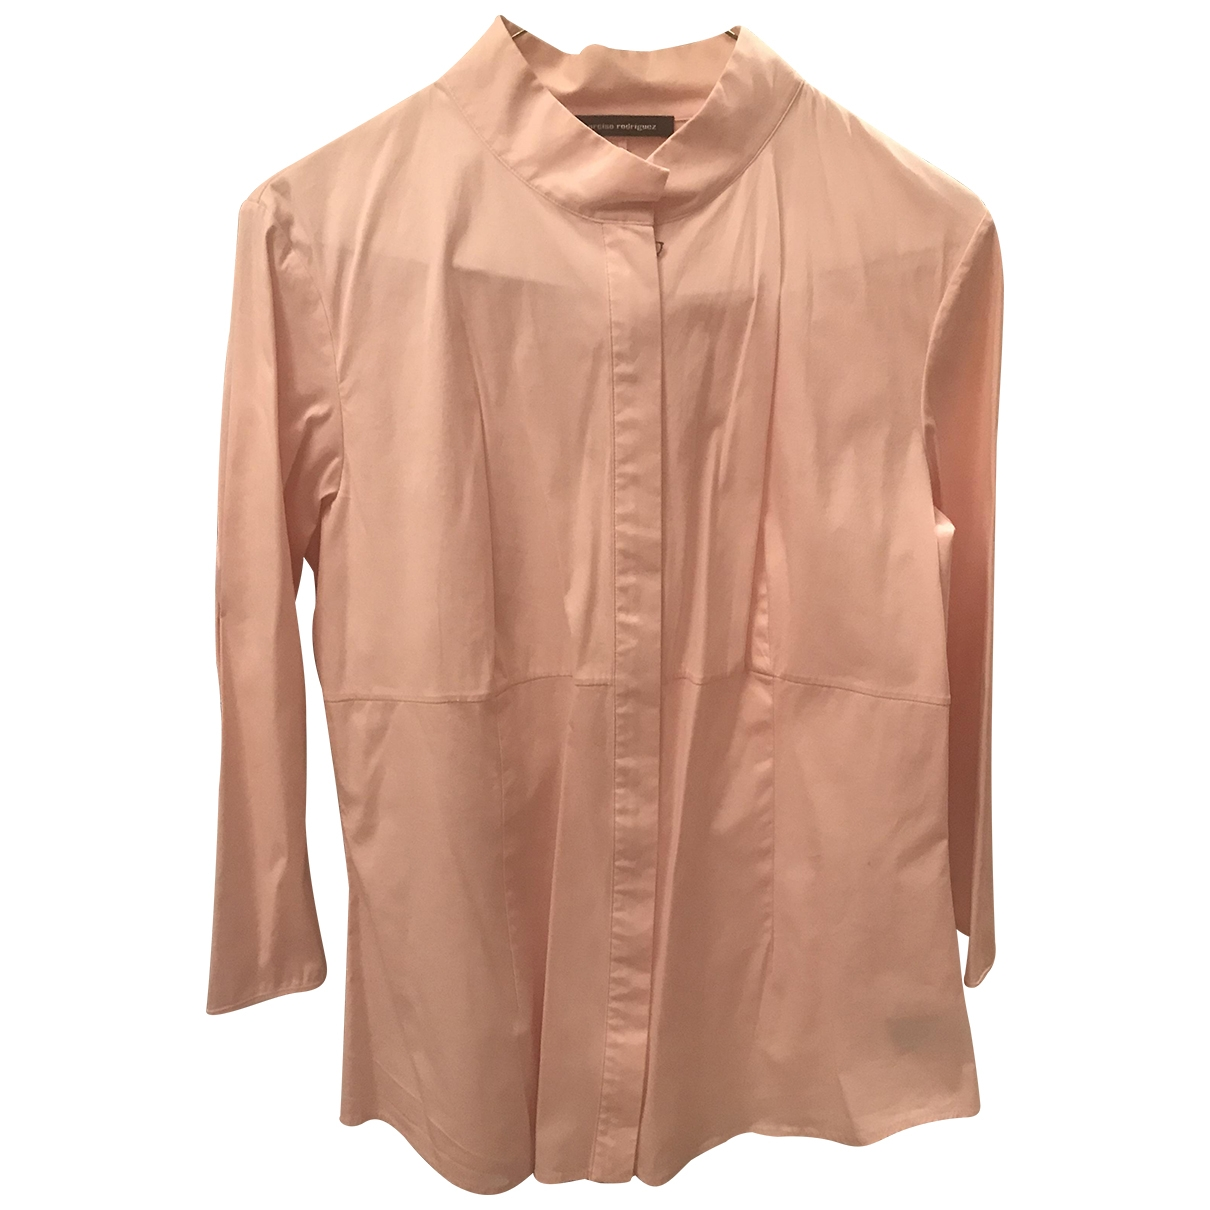 Narciso Rodriguez \N Pink Cotton  top for Women M International